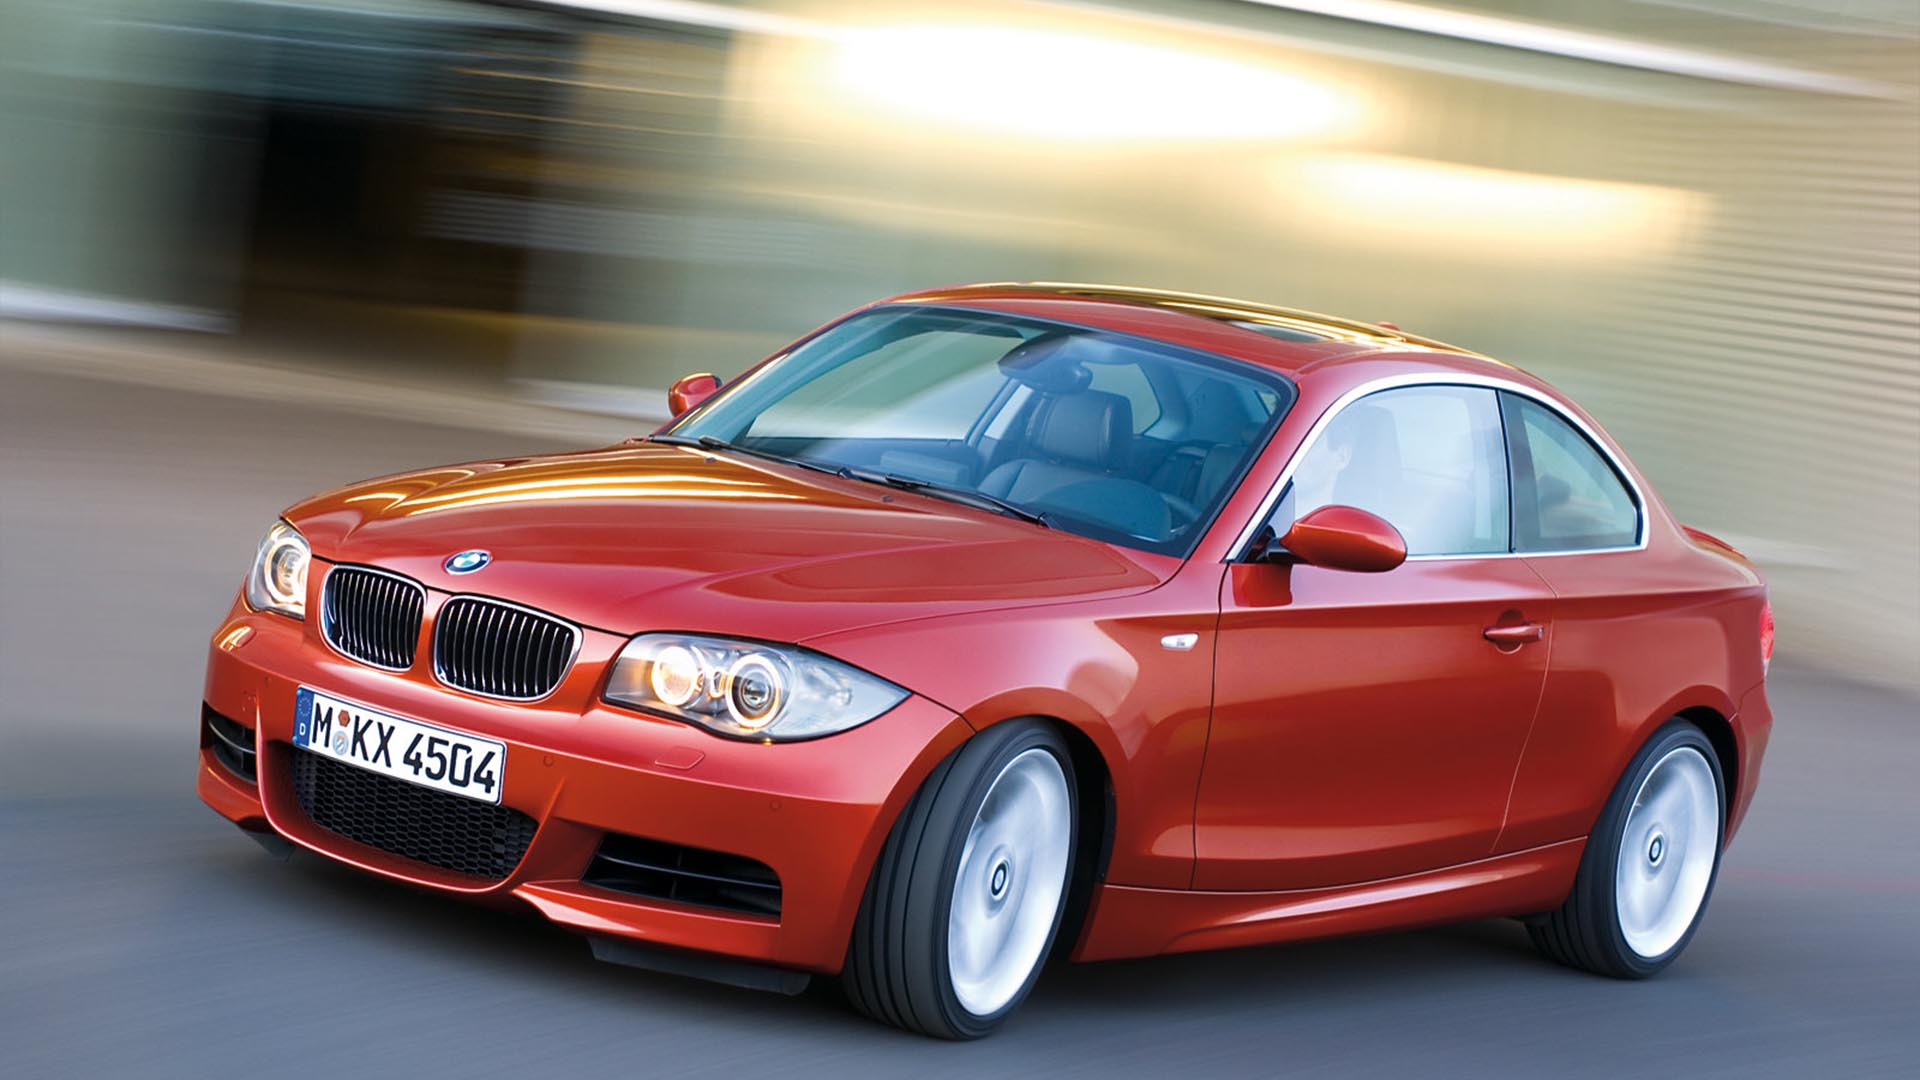 The 5 Cheapest, Reliable, High-Performance BMWs Right Now